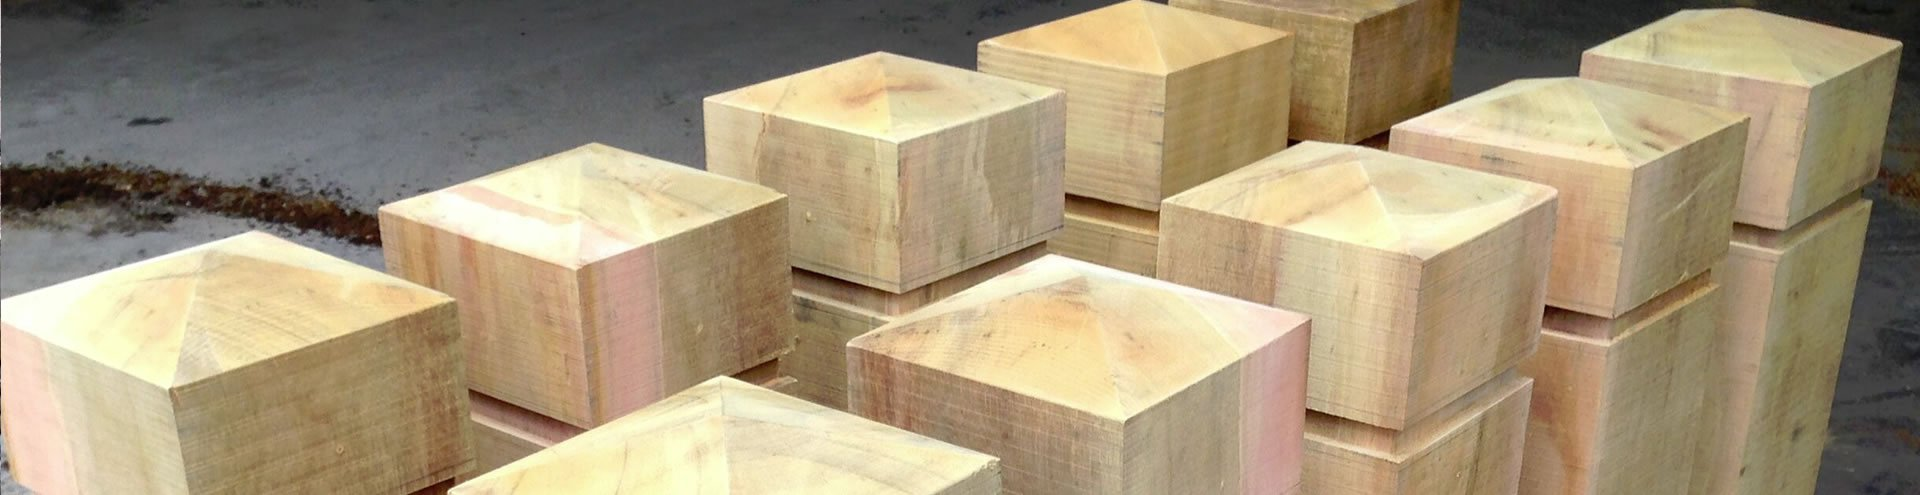 Timber Products | Oak Bollards | Ryder Services